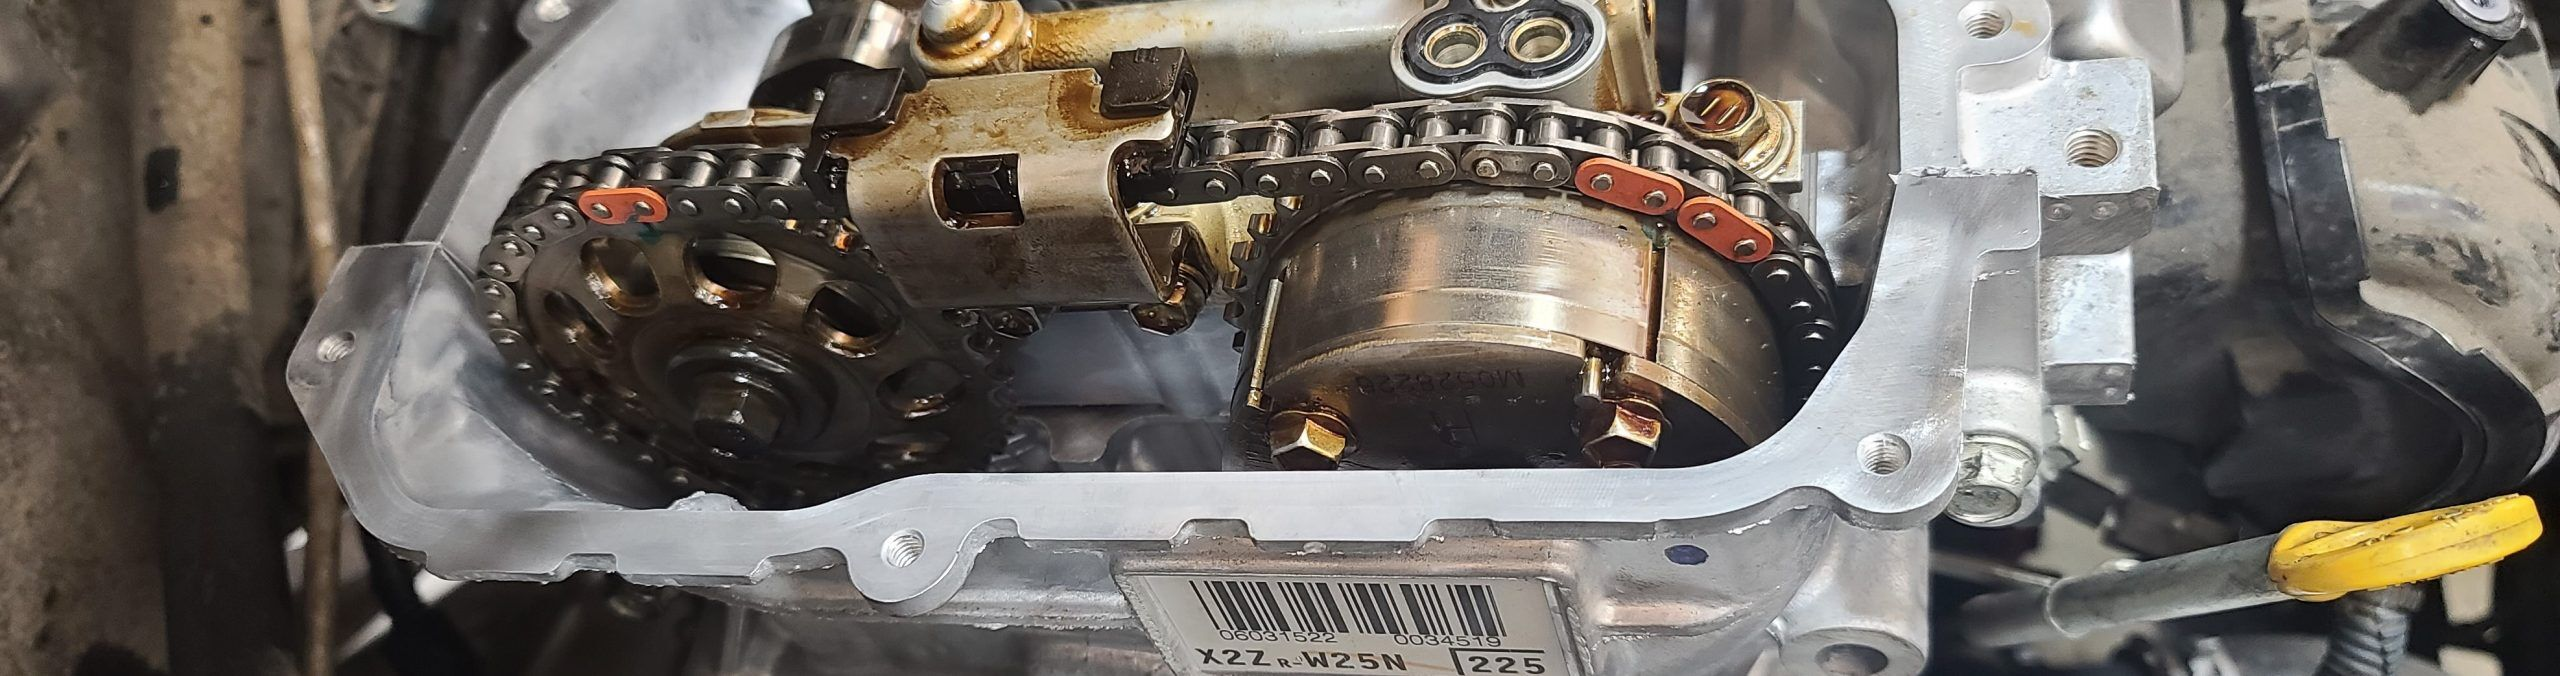 Prius cylinder head with valve cover off and timing marks visible